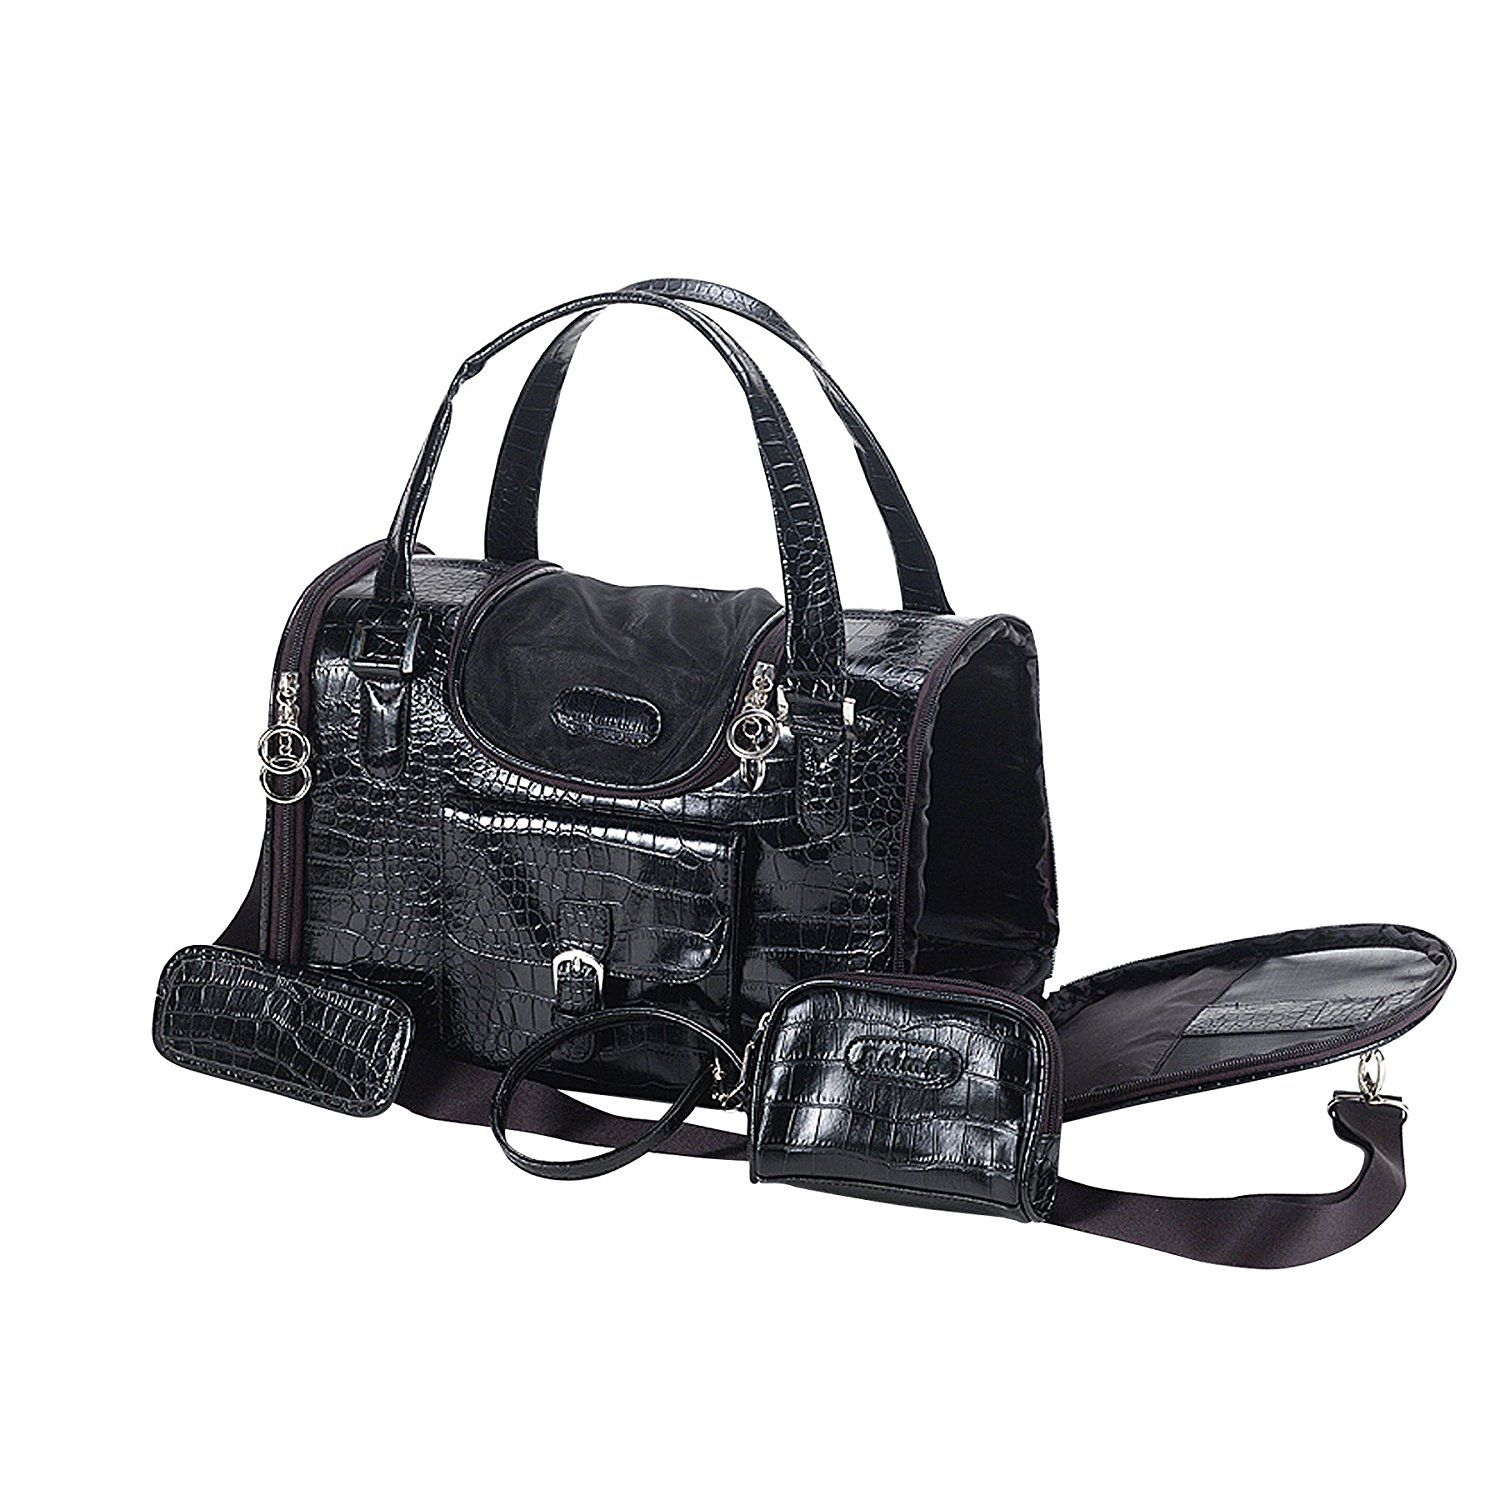 FauxCrocodile Travel Bag w/Matching Coin Purse (Black or